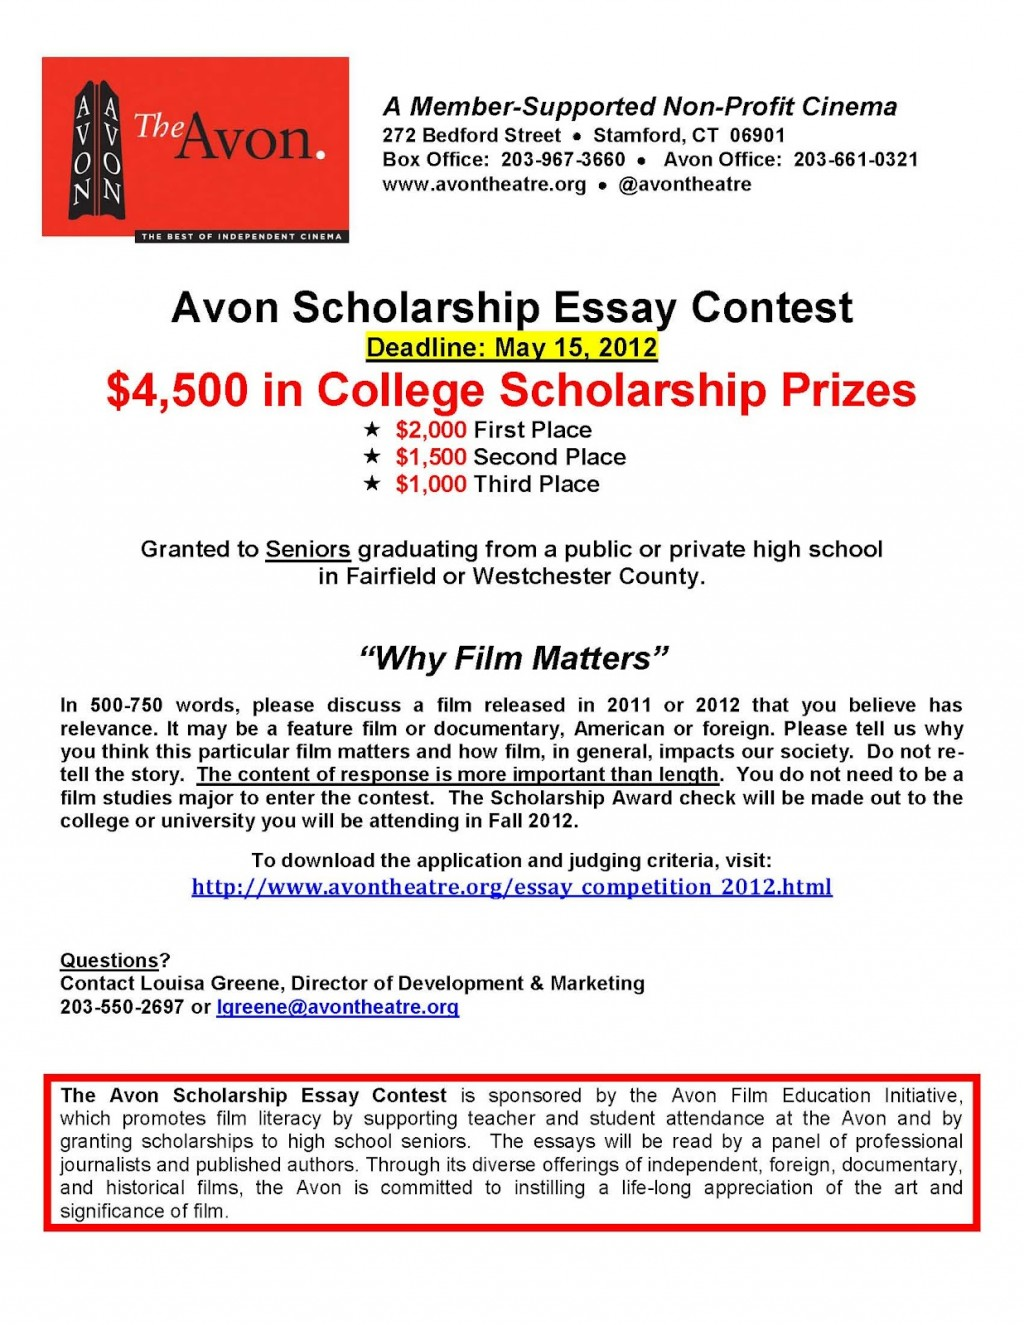 002 Essay Example No Scholarships College Scholarship Prowler Free For High School Seniors Avonscholarshipessaycontest2012 In Texas California Class Of Short Exceptional December 2018 Undergraduates Large